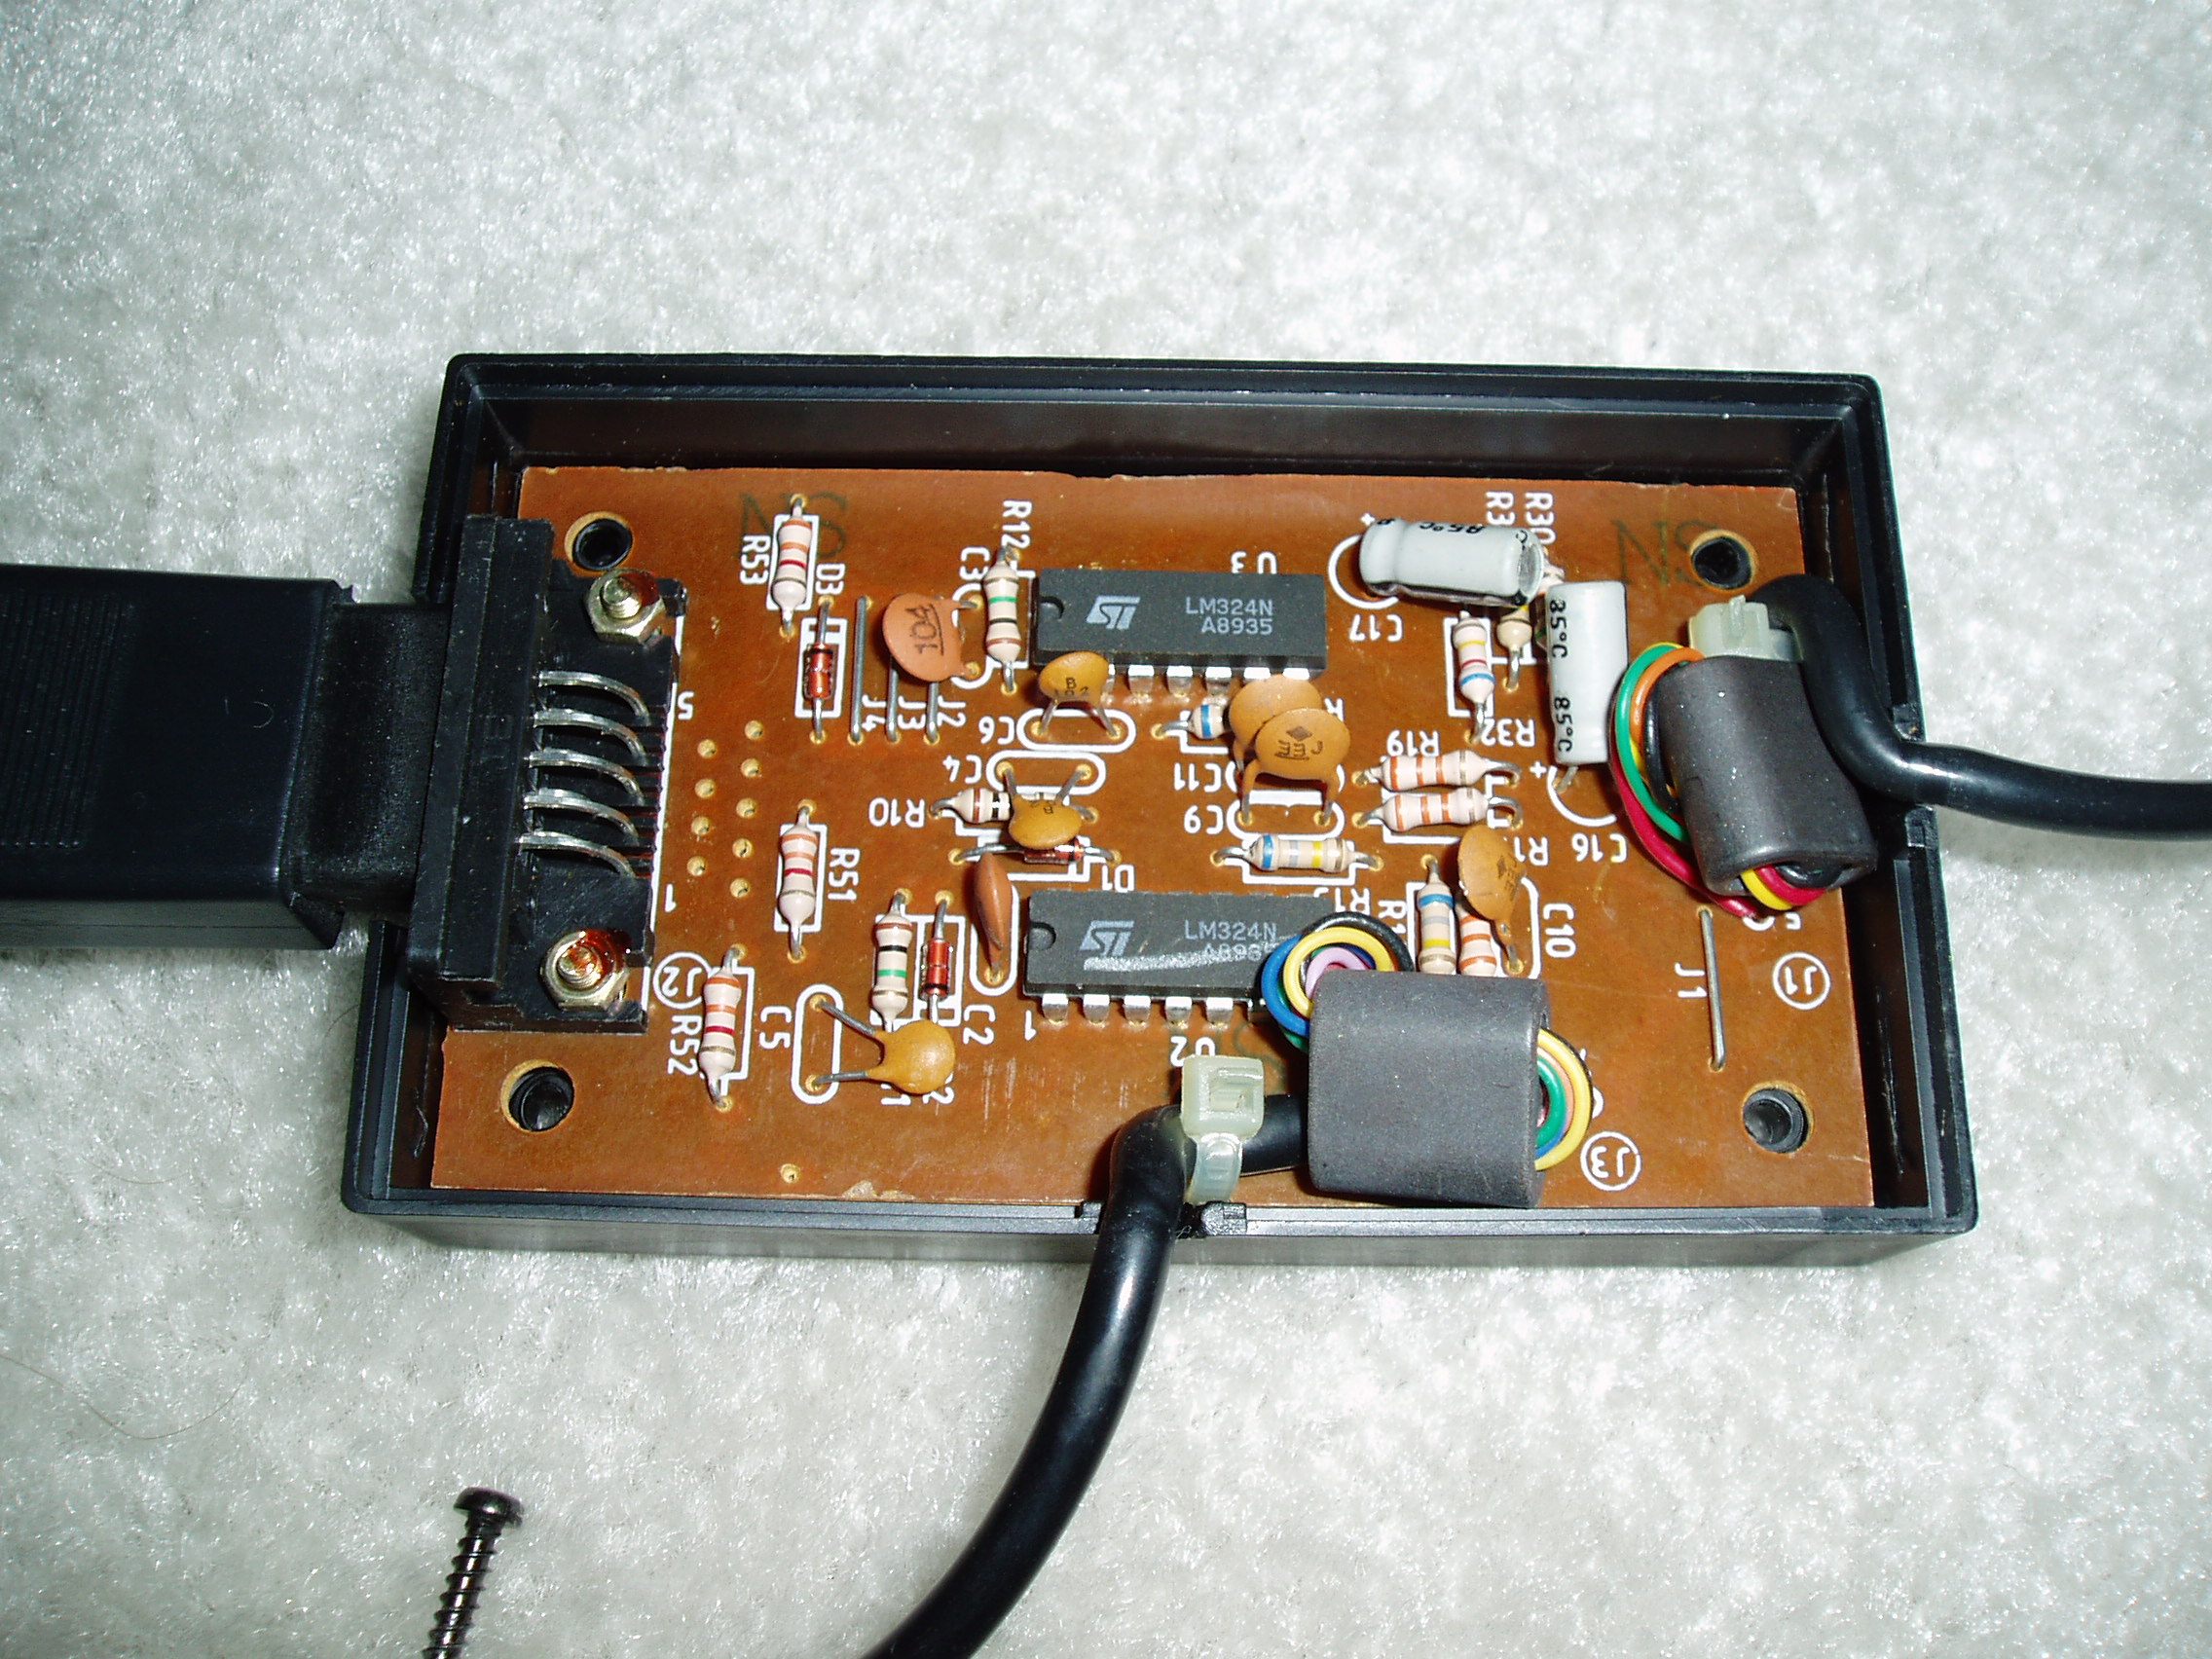 Nesdevcom View Topic The Power Glove Lm324 Op Amp Http Wwwpic2flycom Lm324opamphtml 2 3 Contains A Minimalist Pcb With One Tiny Texas Instruments Tl062cp 939eb Edit Another Datasheetcatalogcom Datashe